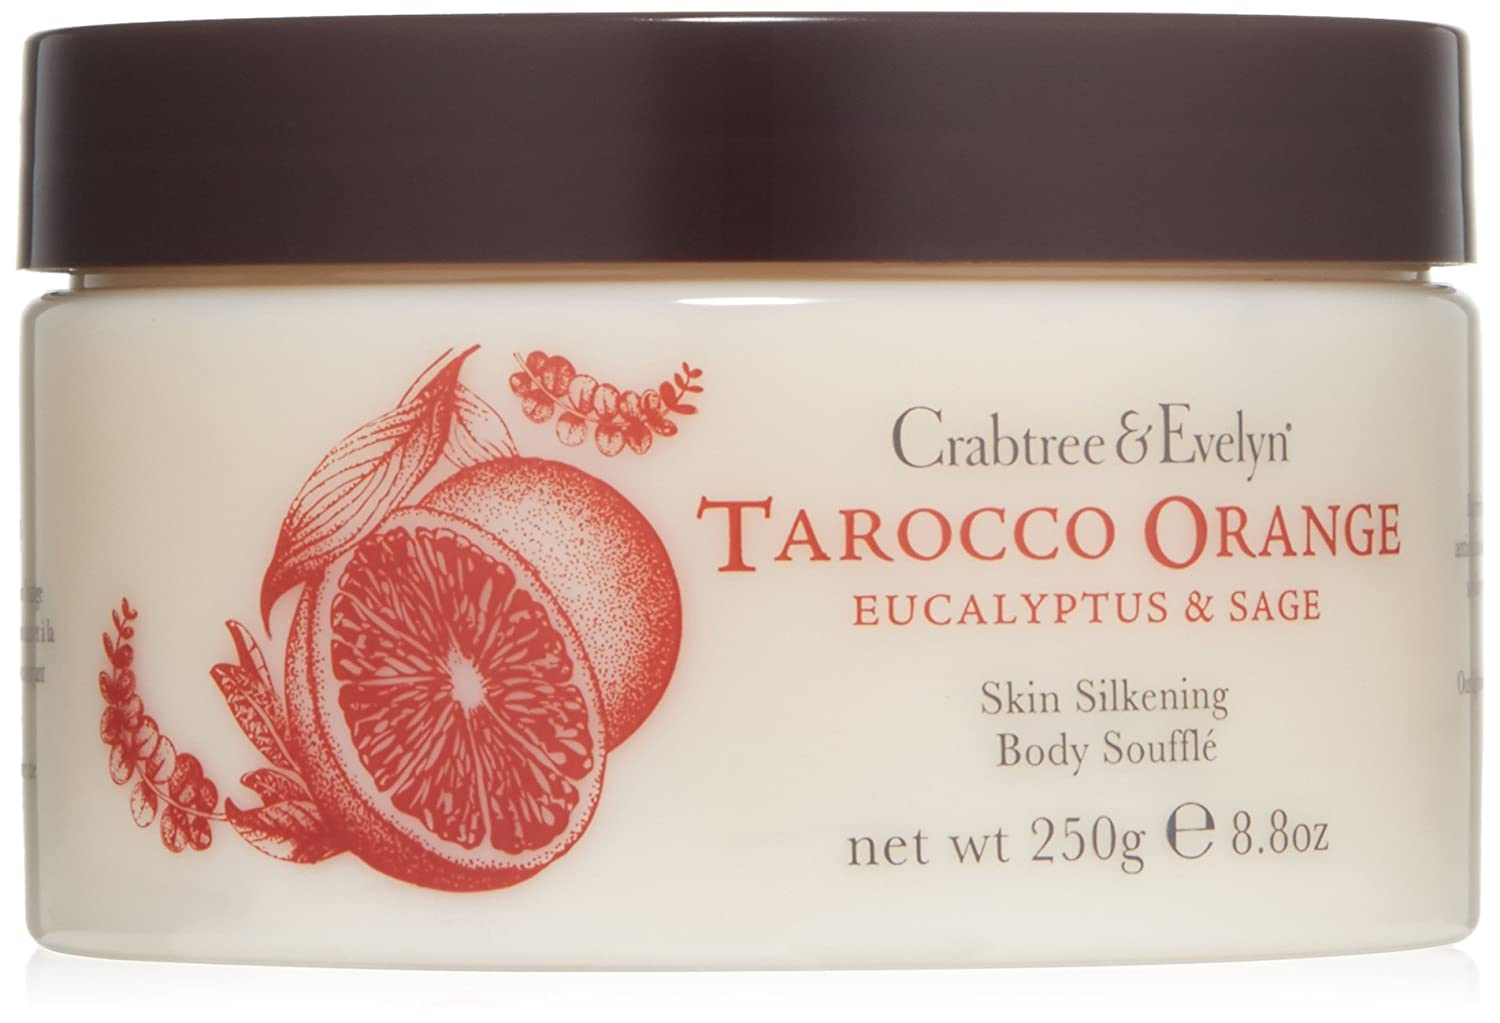 Crabtree and Evelyn Tarocco Orange/Eucalyptus and Sage Body Souffle 250g 79997